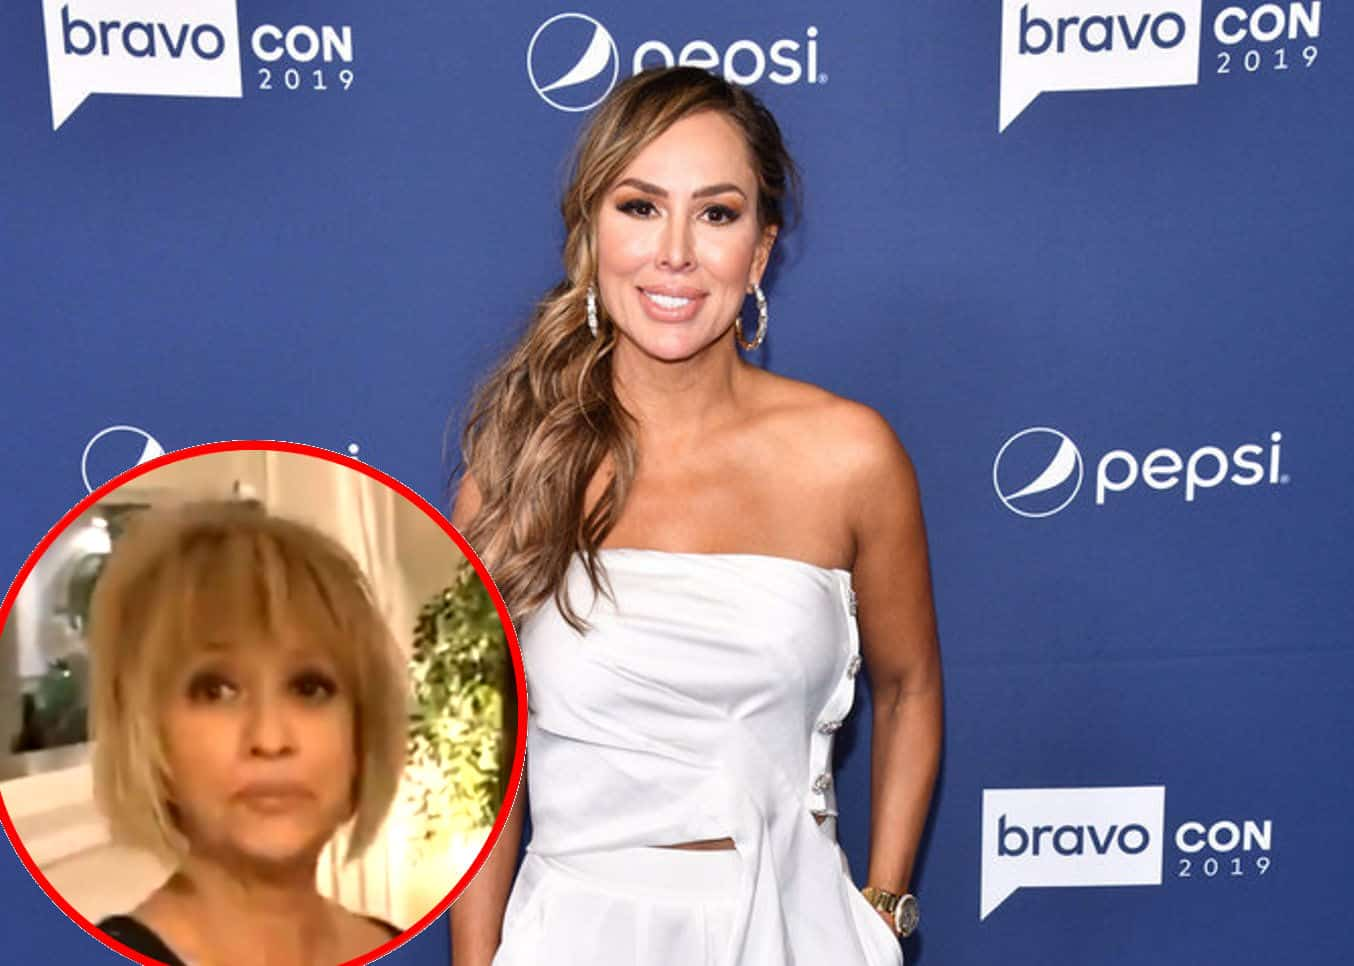 RHOC's Kelly Dodd Confirms Mom Bobbi is in ICU Battling COVID-19 and Offers Update on Her Health, Plus She Pokes Fun at Masks and Denies Getting Her Mother Sick